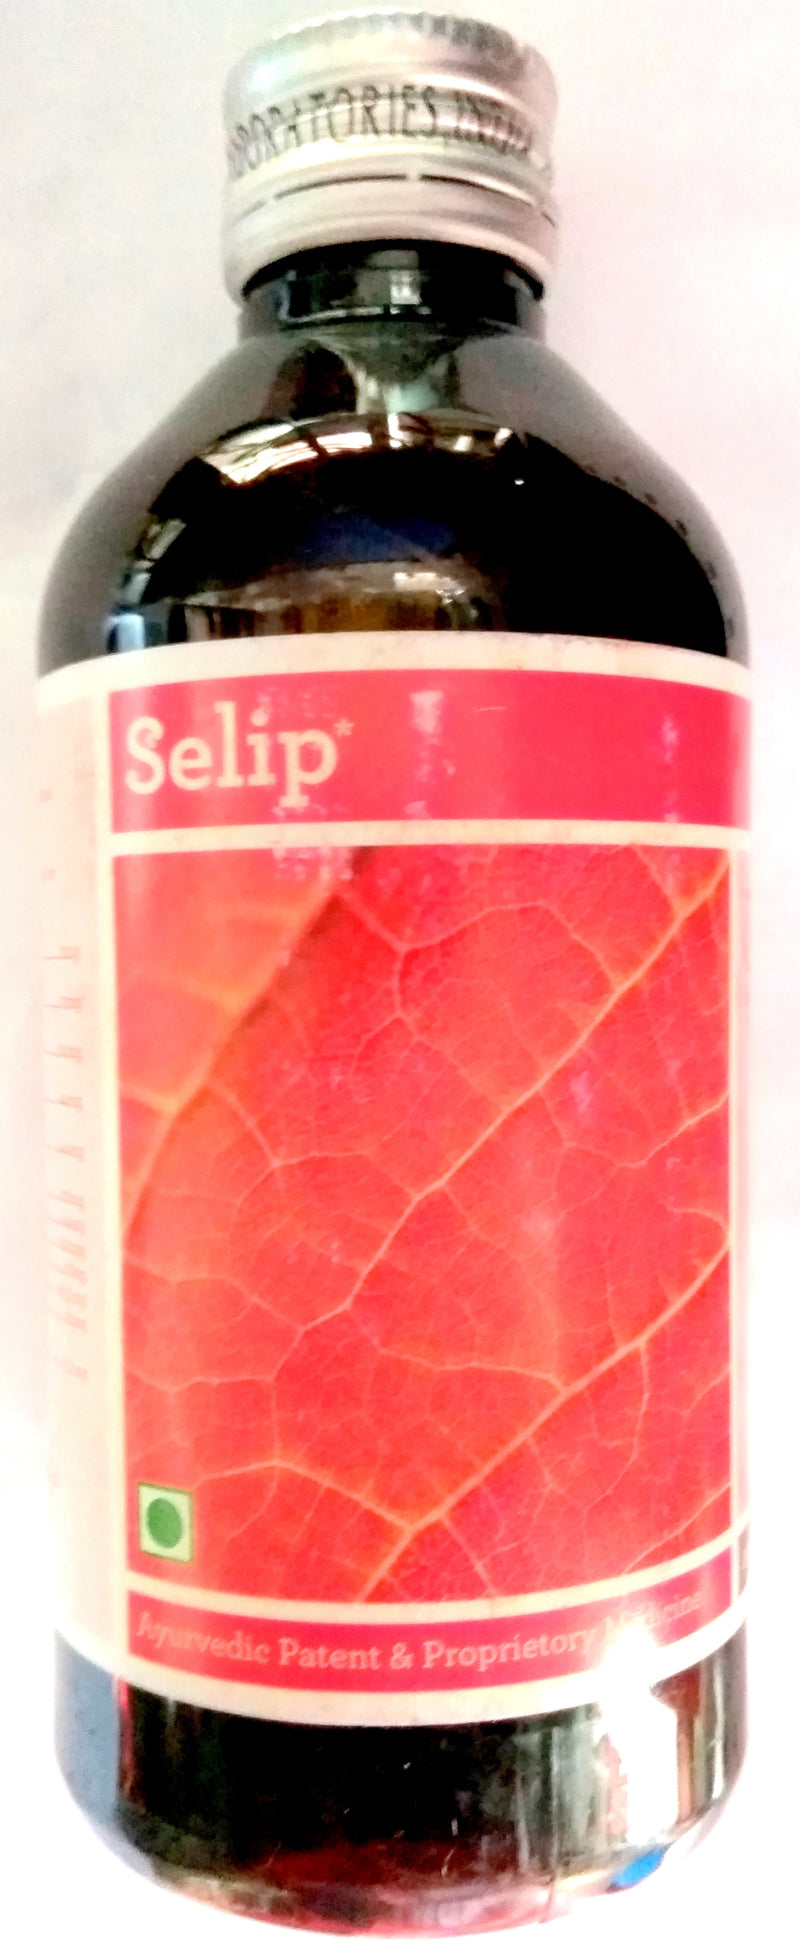 Selip syrup 200ml (Ayurvedic) for Piles - Ayush Care